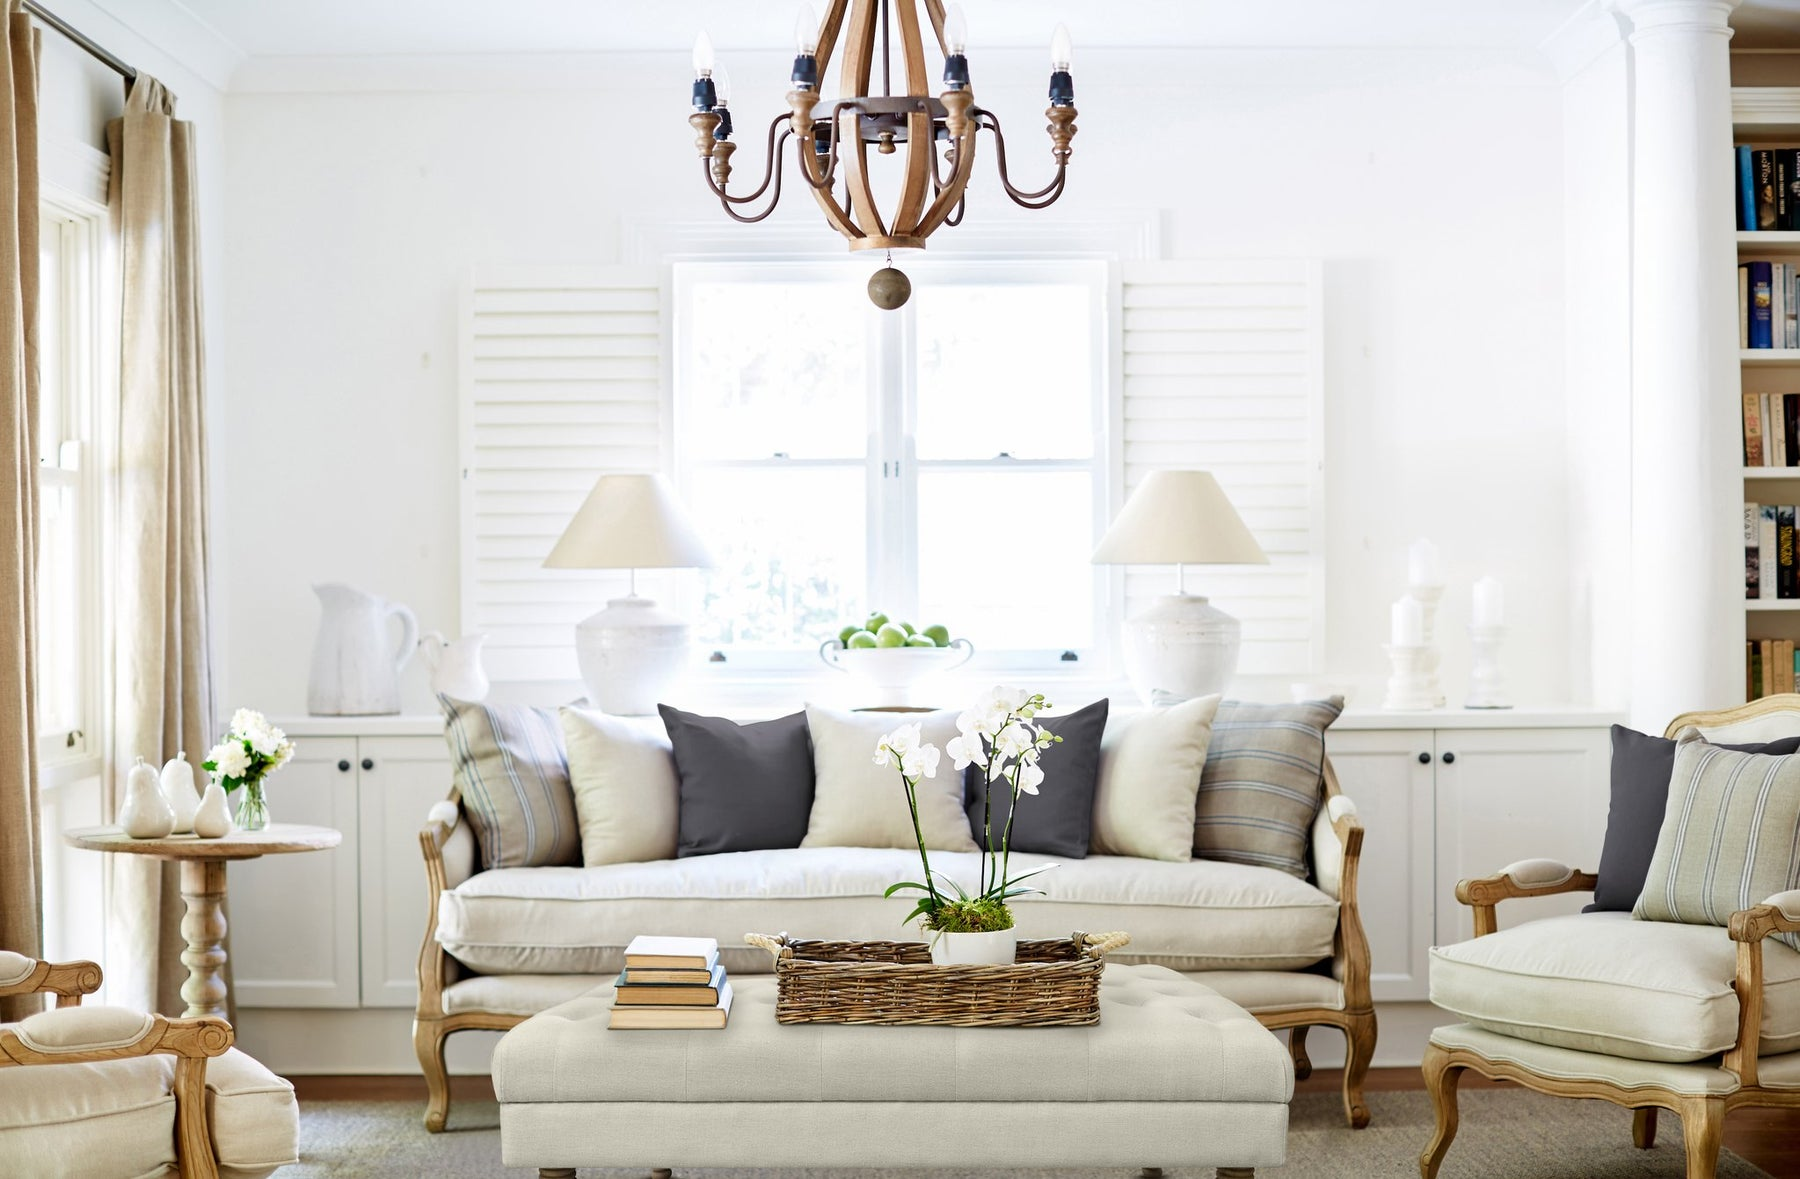 French Provincial Style - Relaxed Elegance for your Living Room